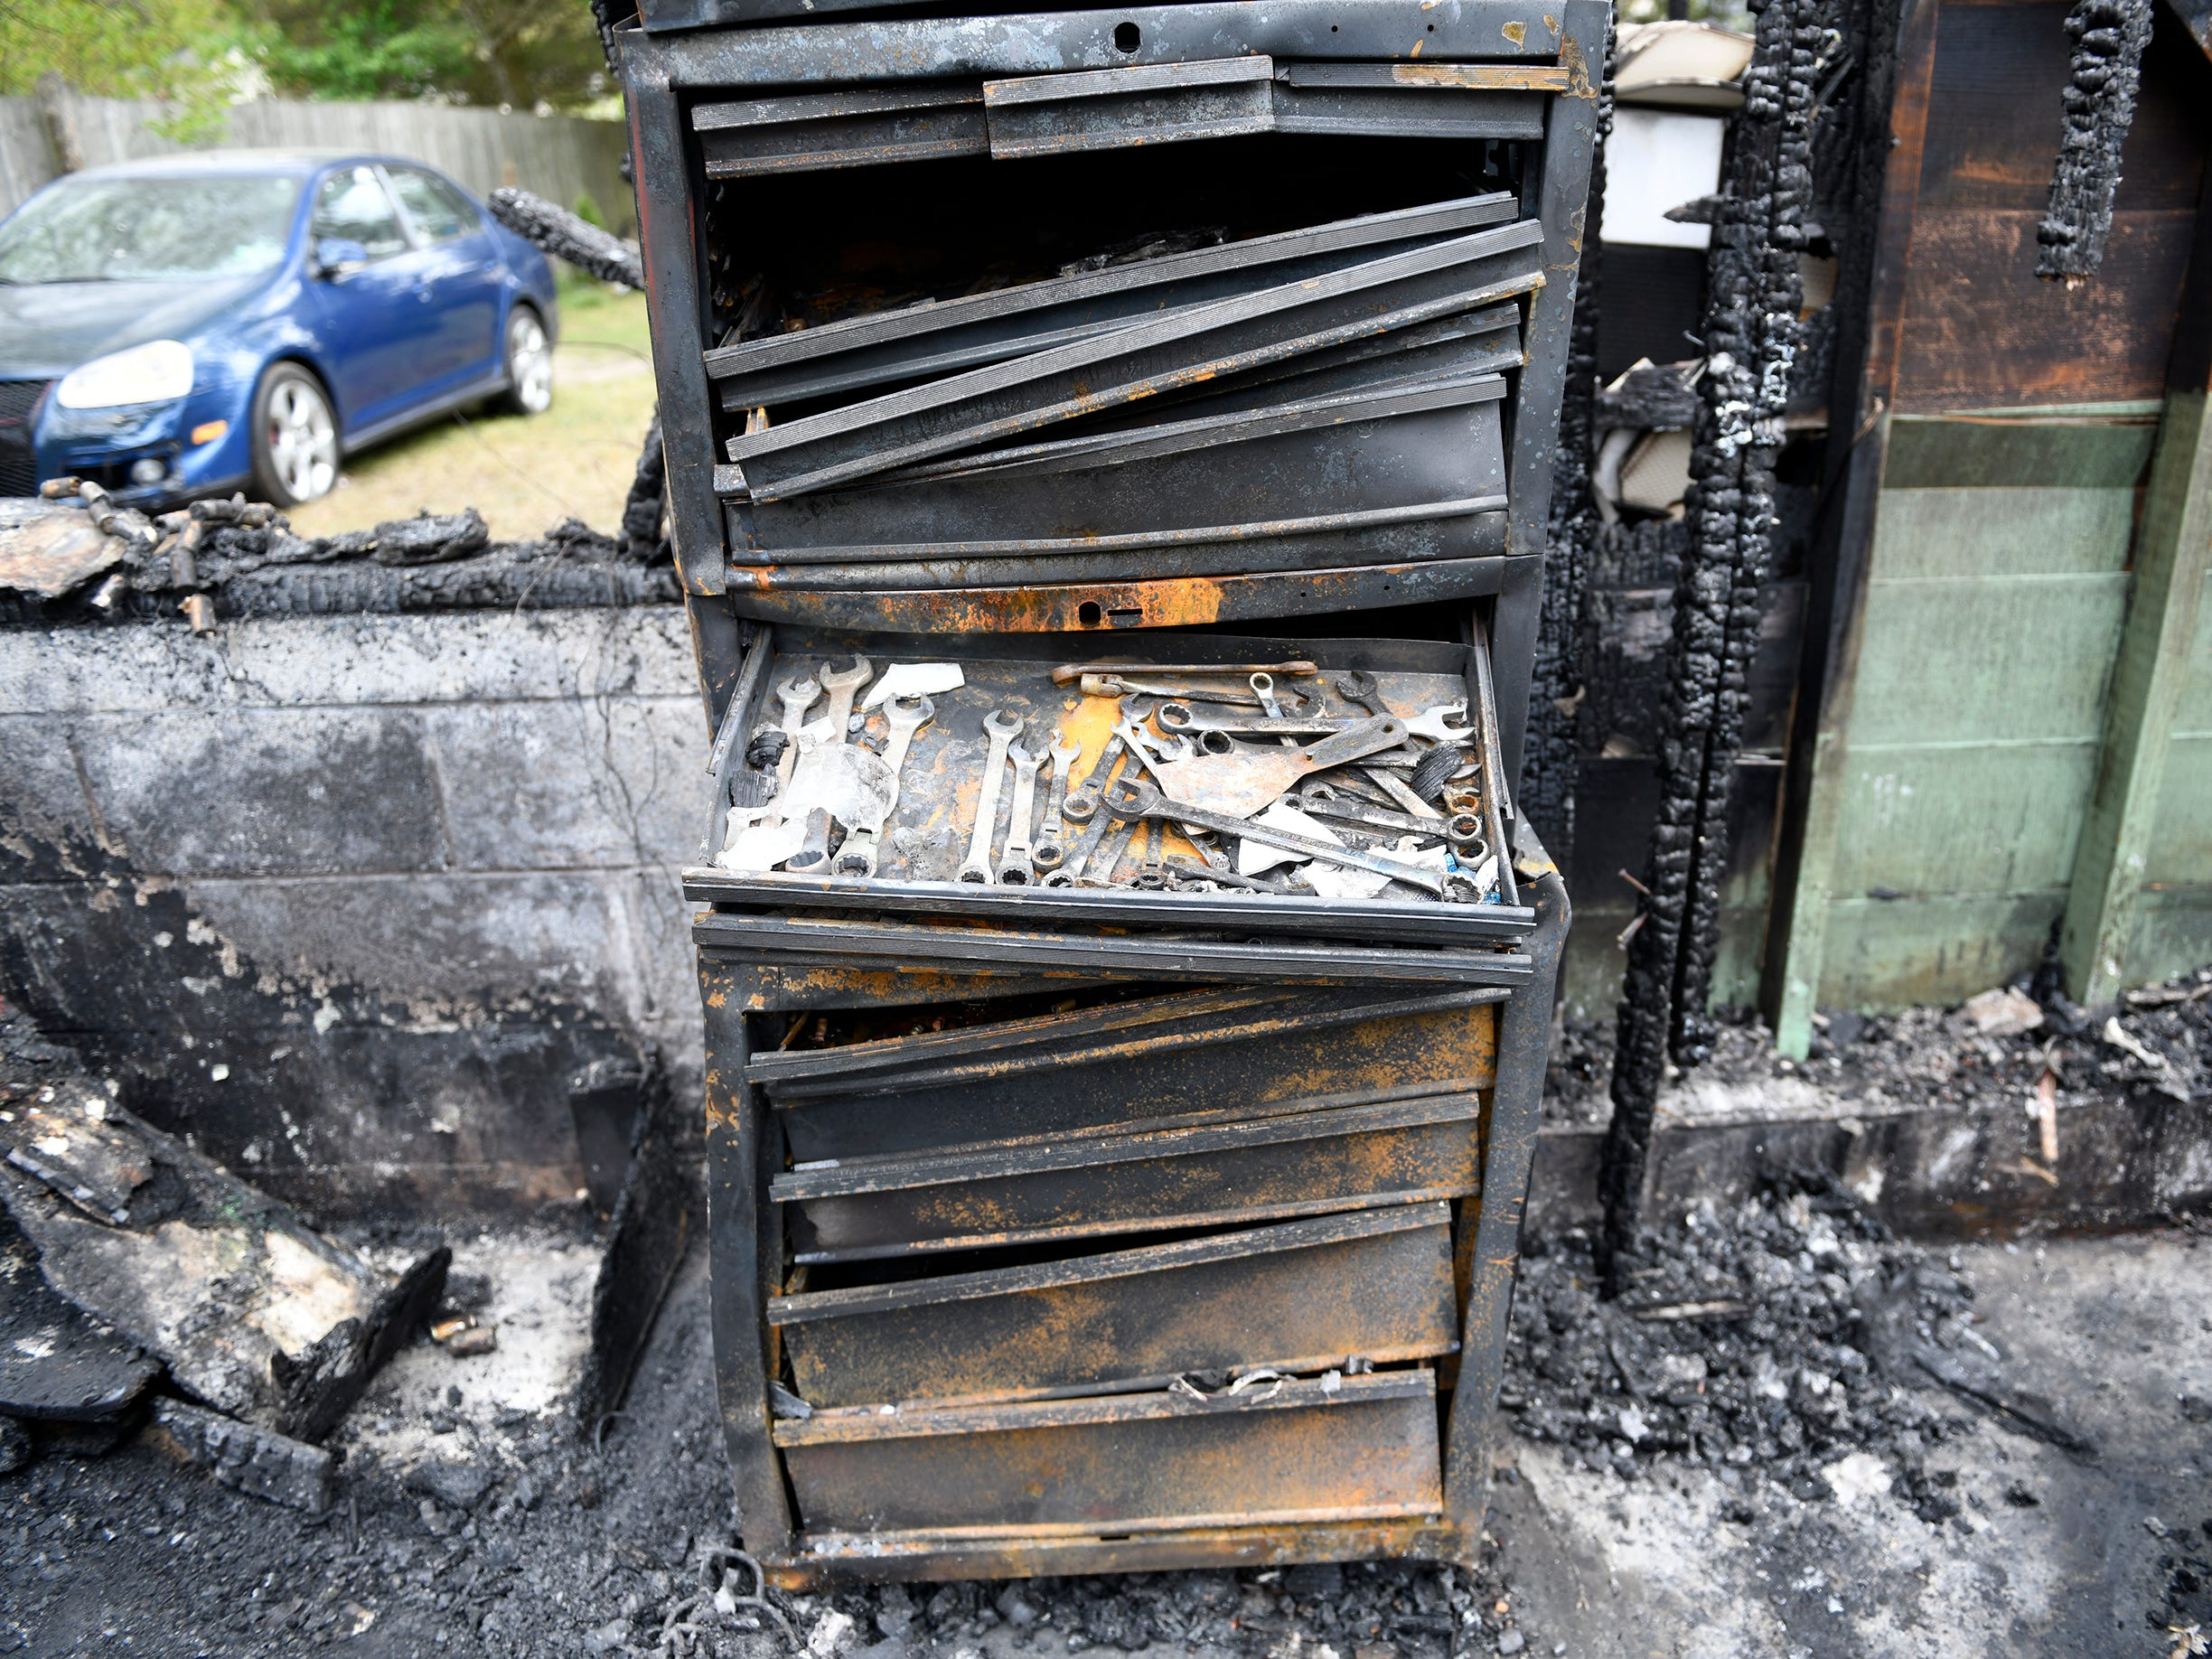 A heavy-duty tool cabinet in the garage became warped from the intense heat of Monday's house fire on the 1700 block of West Oak Road in Vineland on Monday.